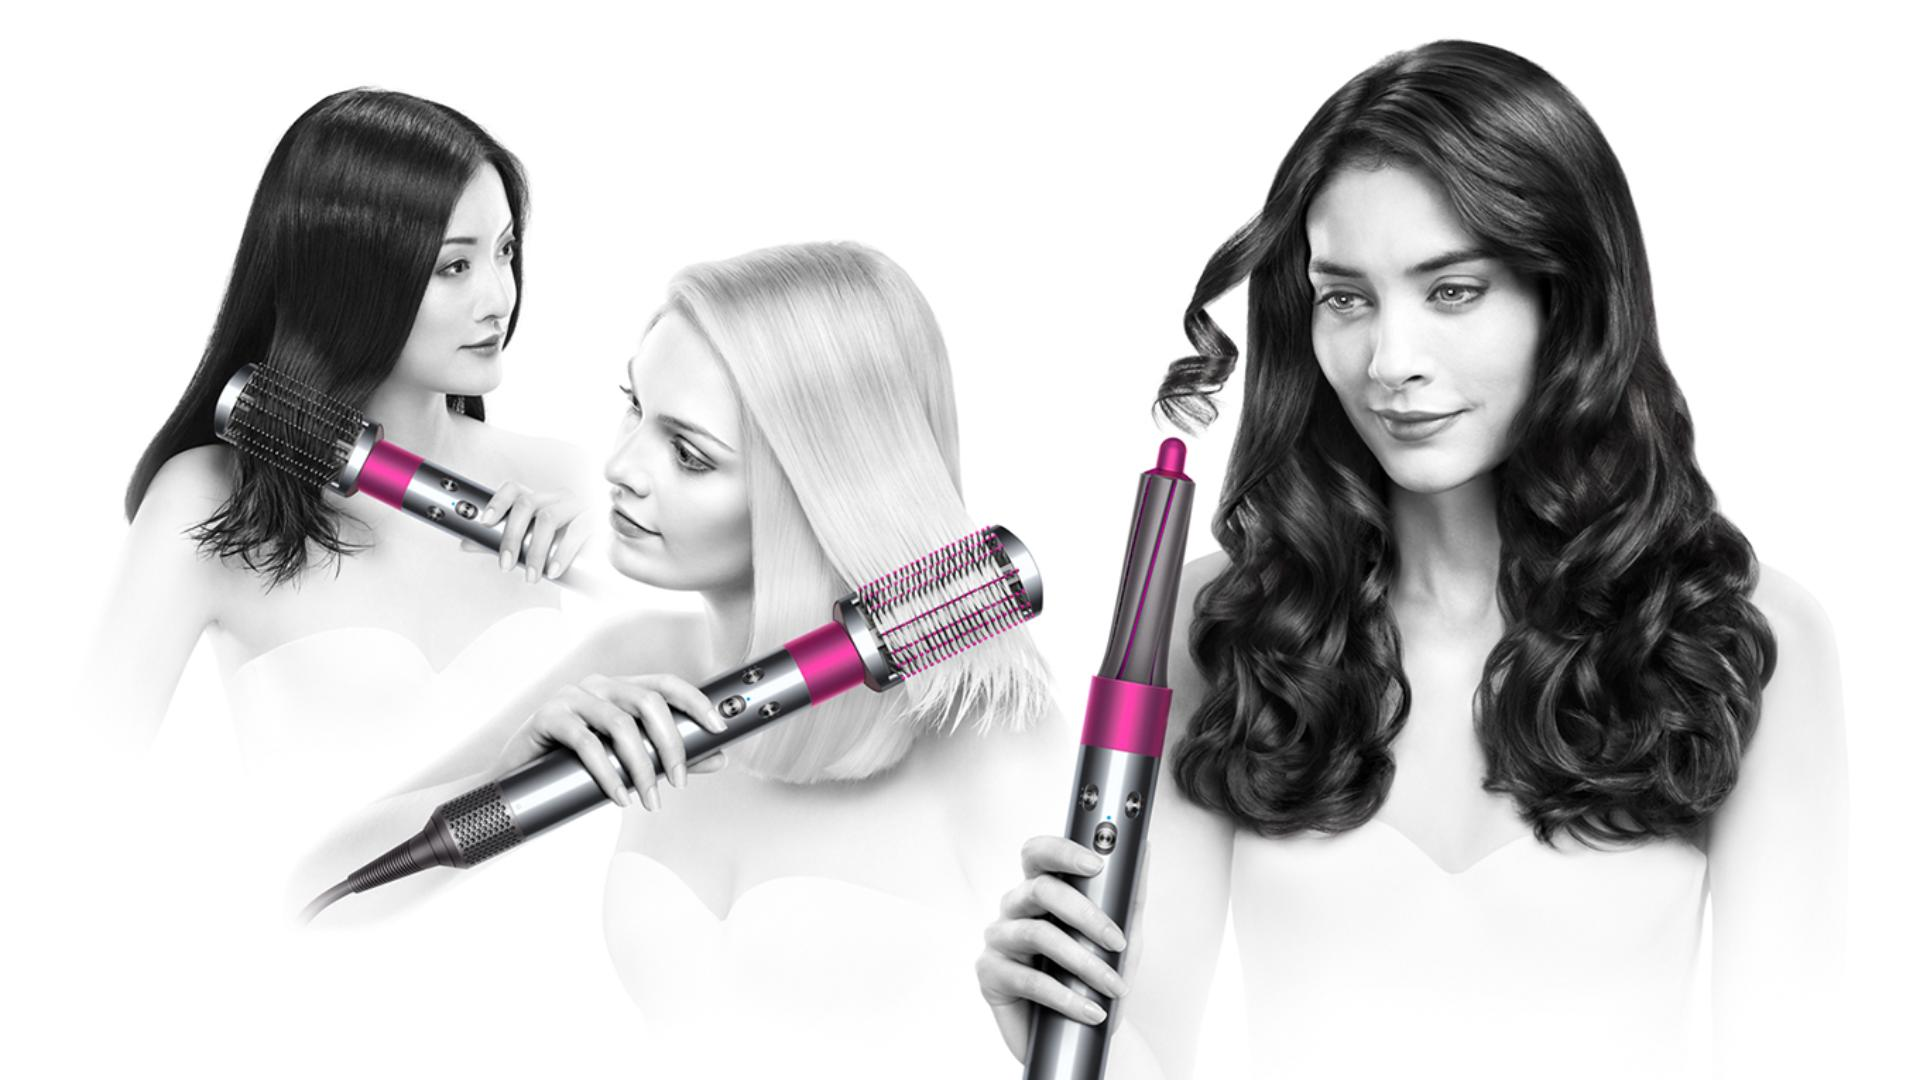 Two models using Dyson airwrap styler control with different attachments